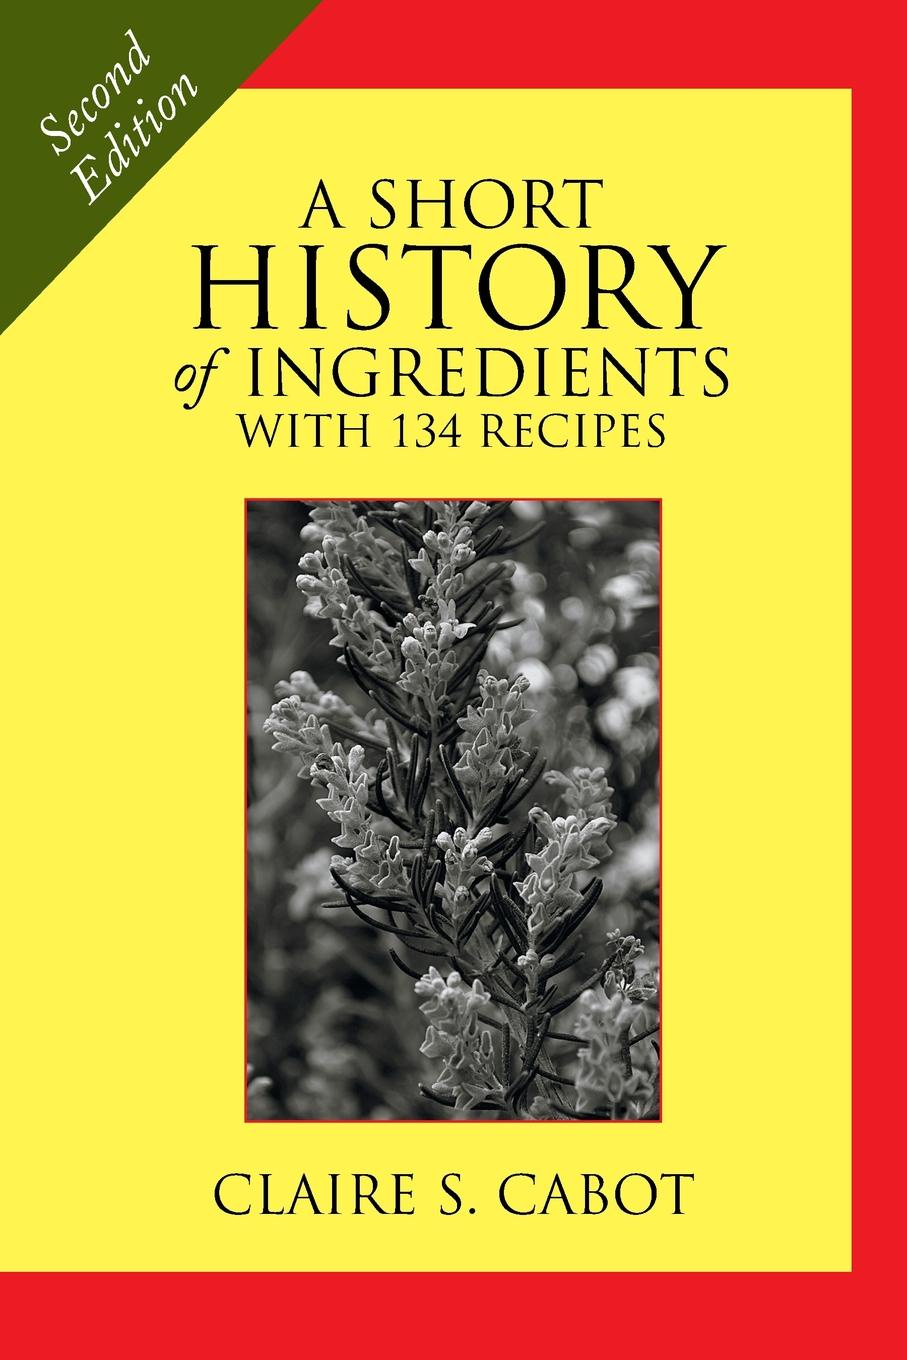 Фото - Claire S. Cabot A Short History of Ingredients. Second Edition 5 ingredients quick